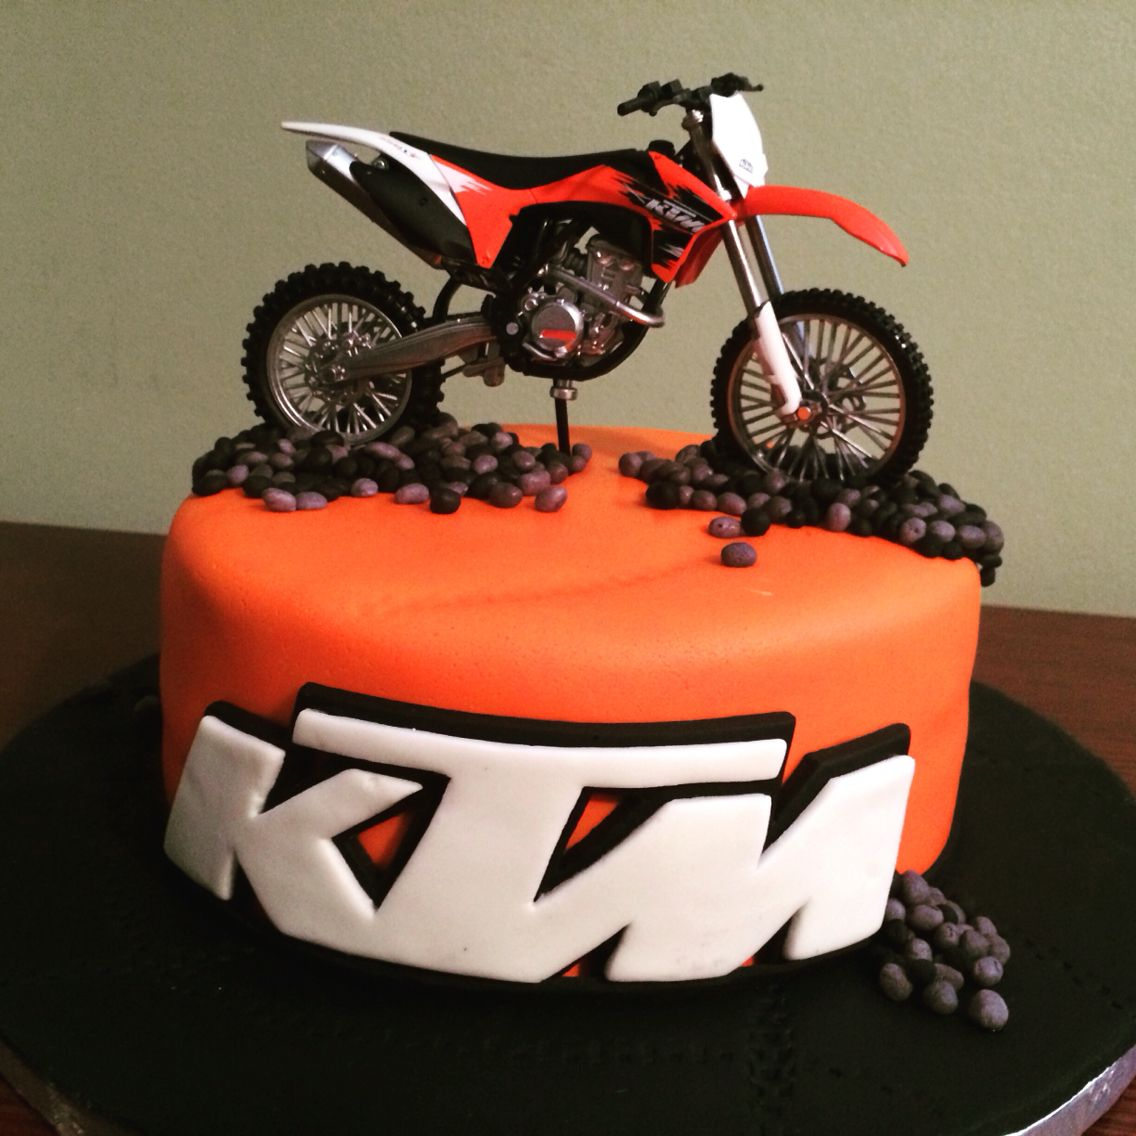 Idee Decoration Gateau Au Chocolat Gâteau Moto Ktm Yummy Food En 2019 Gateau Moto